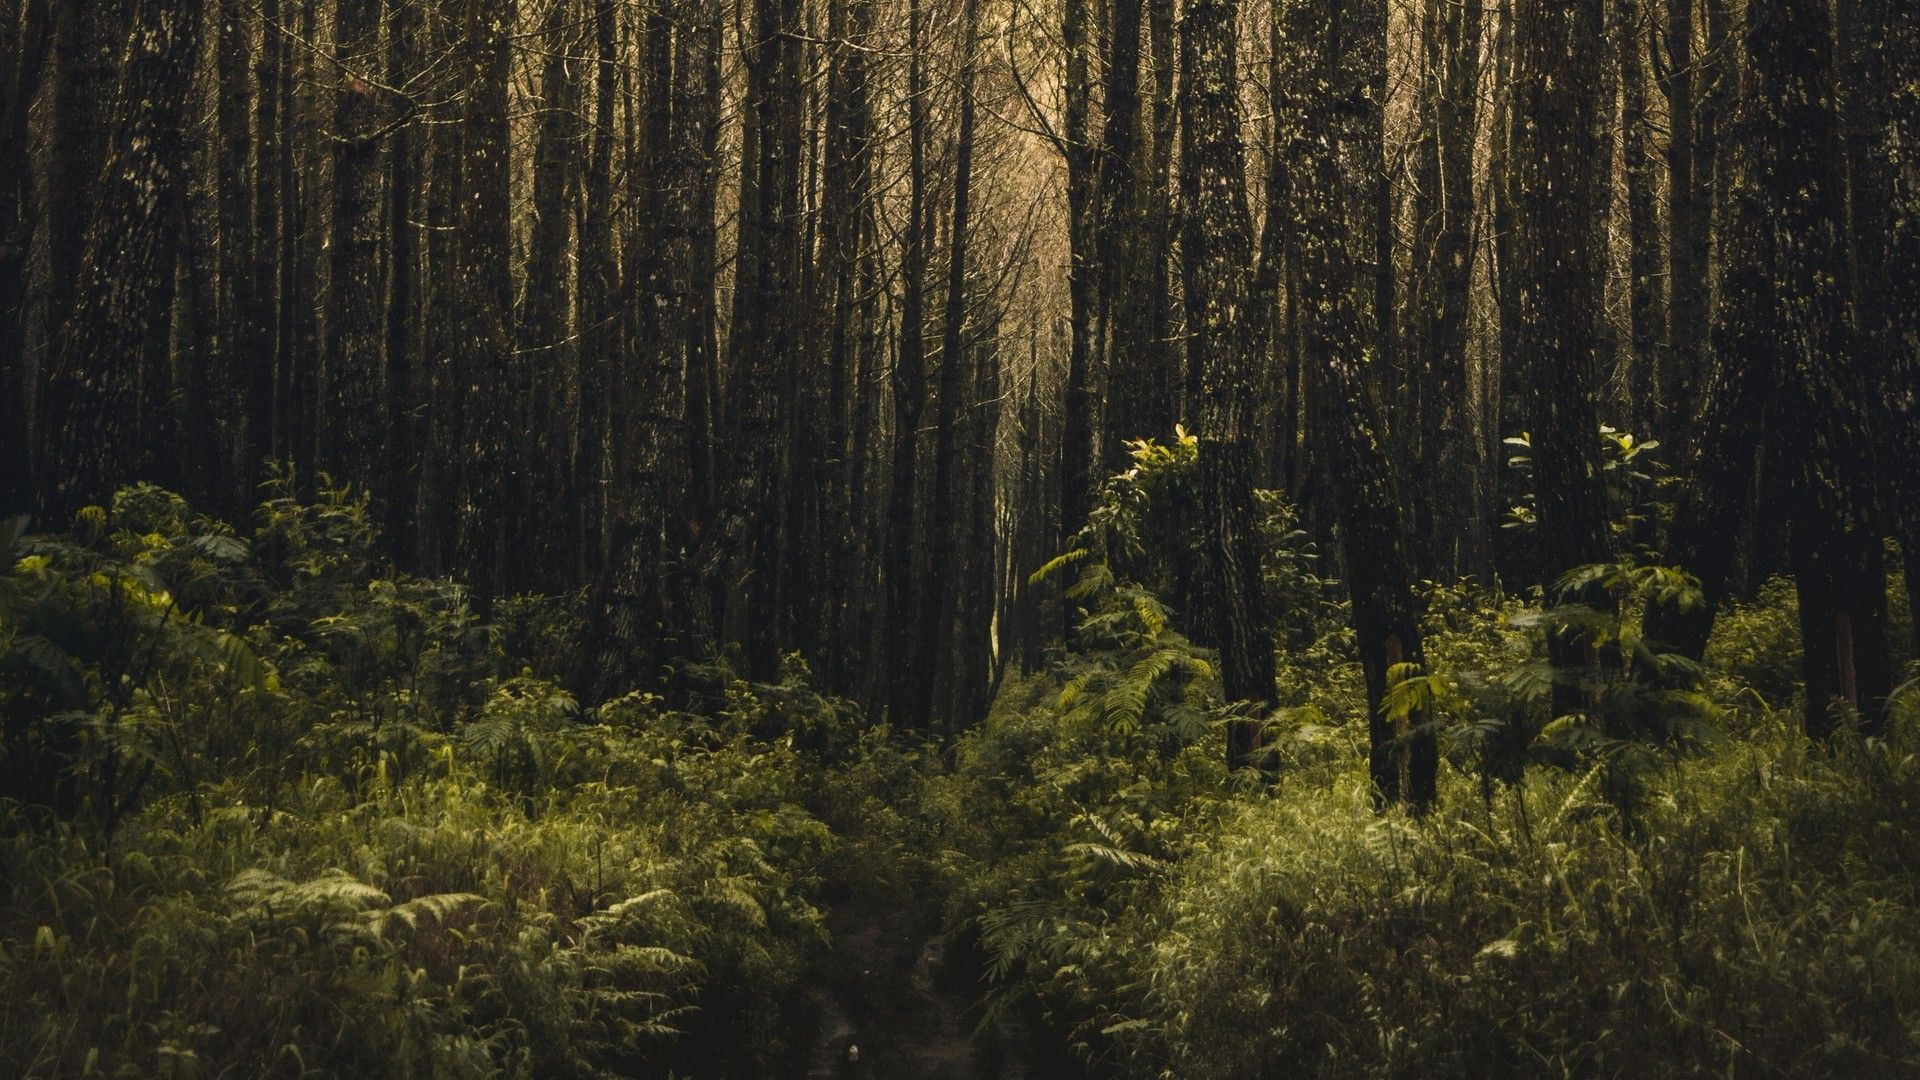 Scary Forest Wallpapers 65 Best Free Scary Forest Hd Wallpaper For Laptop In 2020 Forest Wallpaper Tree Hd Wallpaper Hd Wallpapers For Laptop